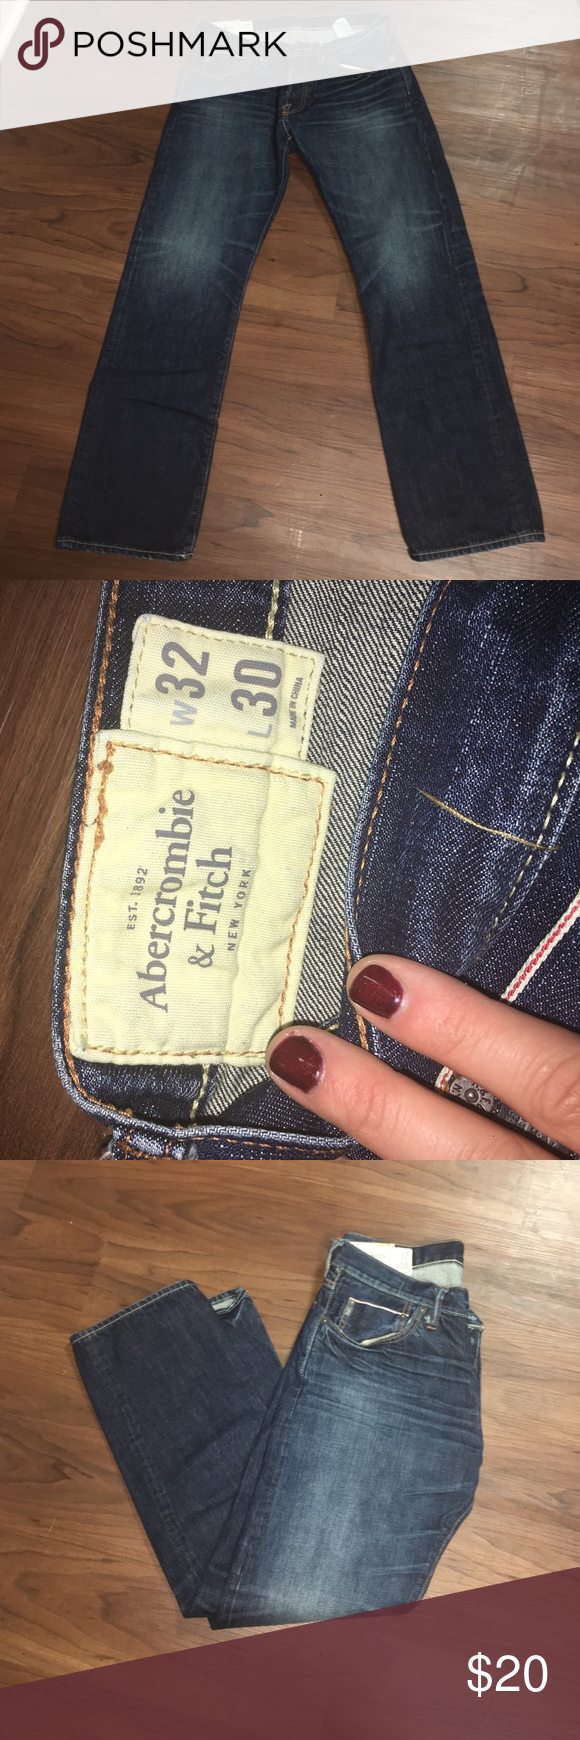 Abercrombie jeans ! Men's Abercrombie jeans. 33x 30Feel free to make an offer ! Abercrombie & Fitch Jeans